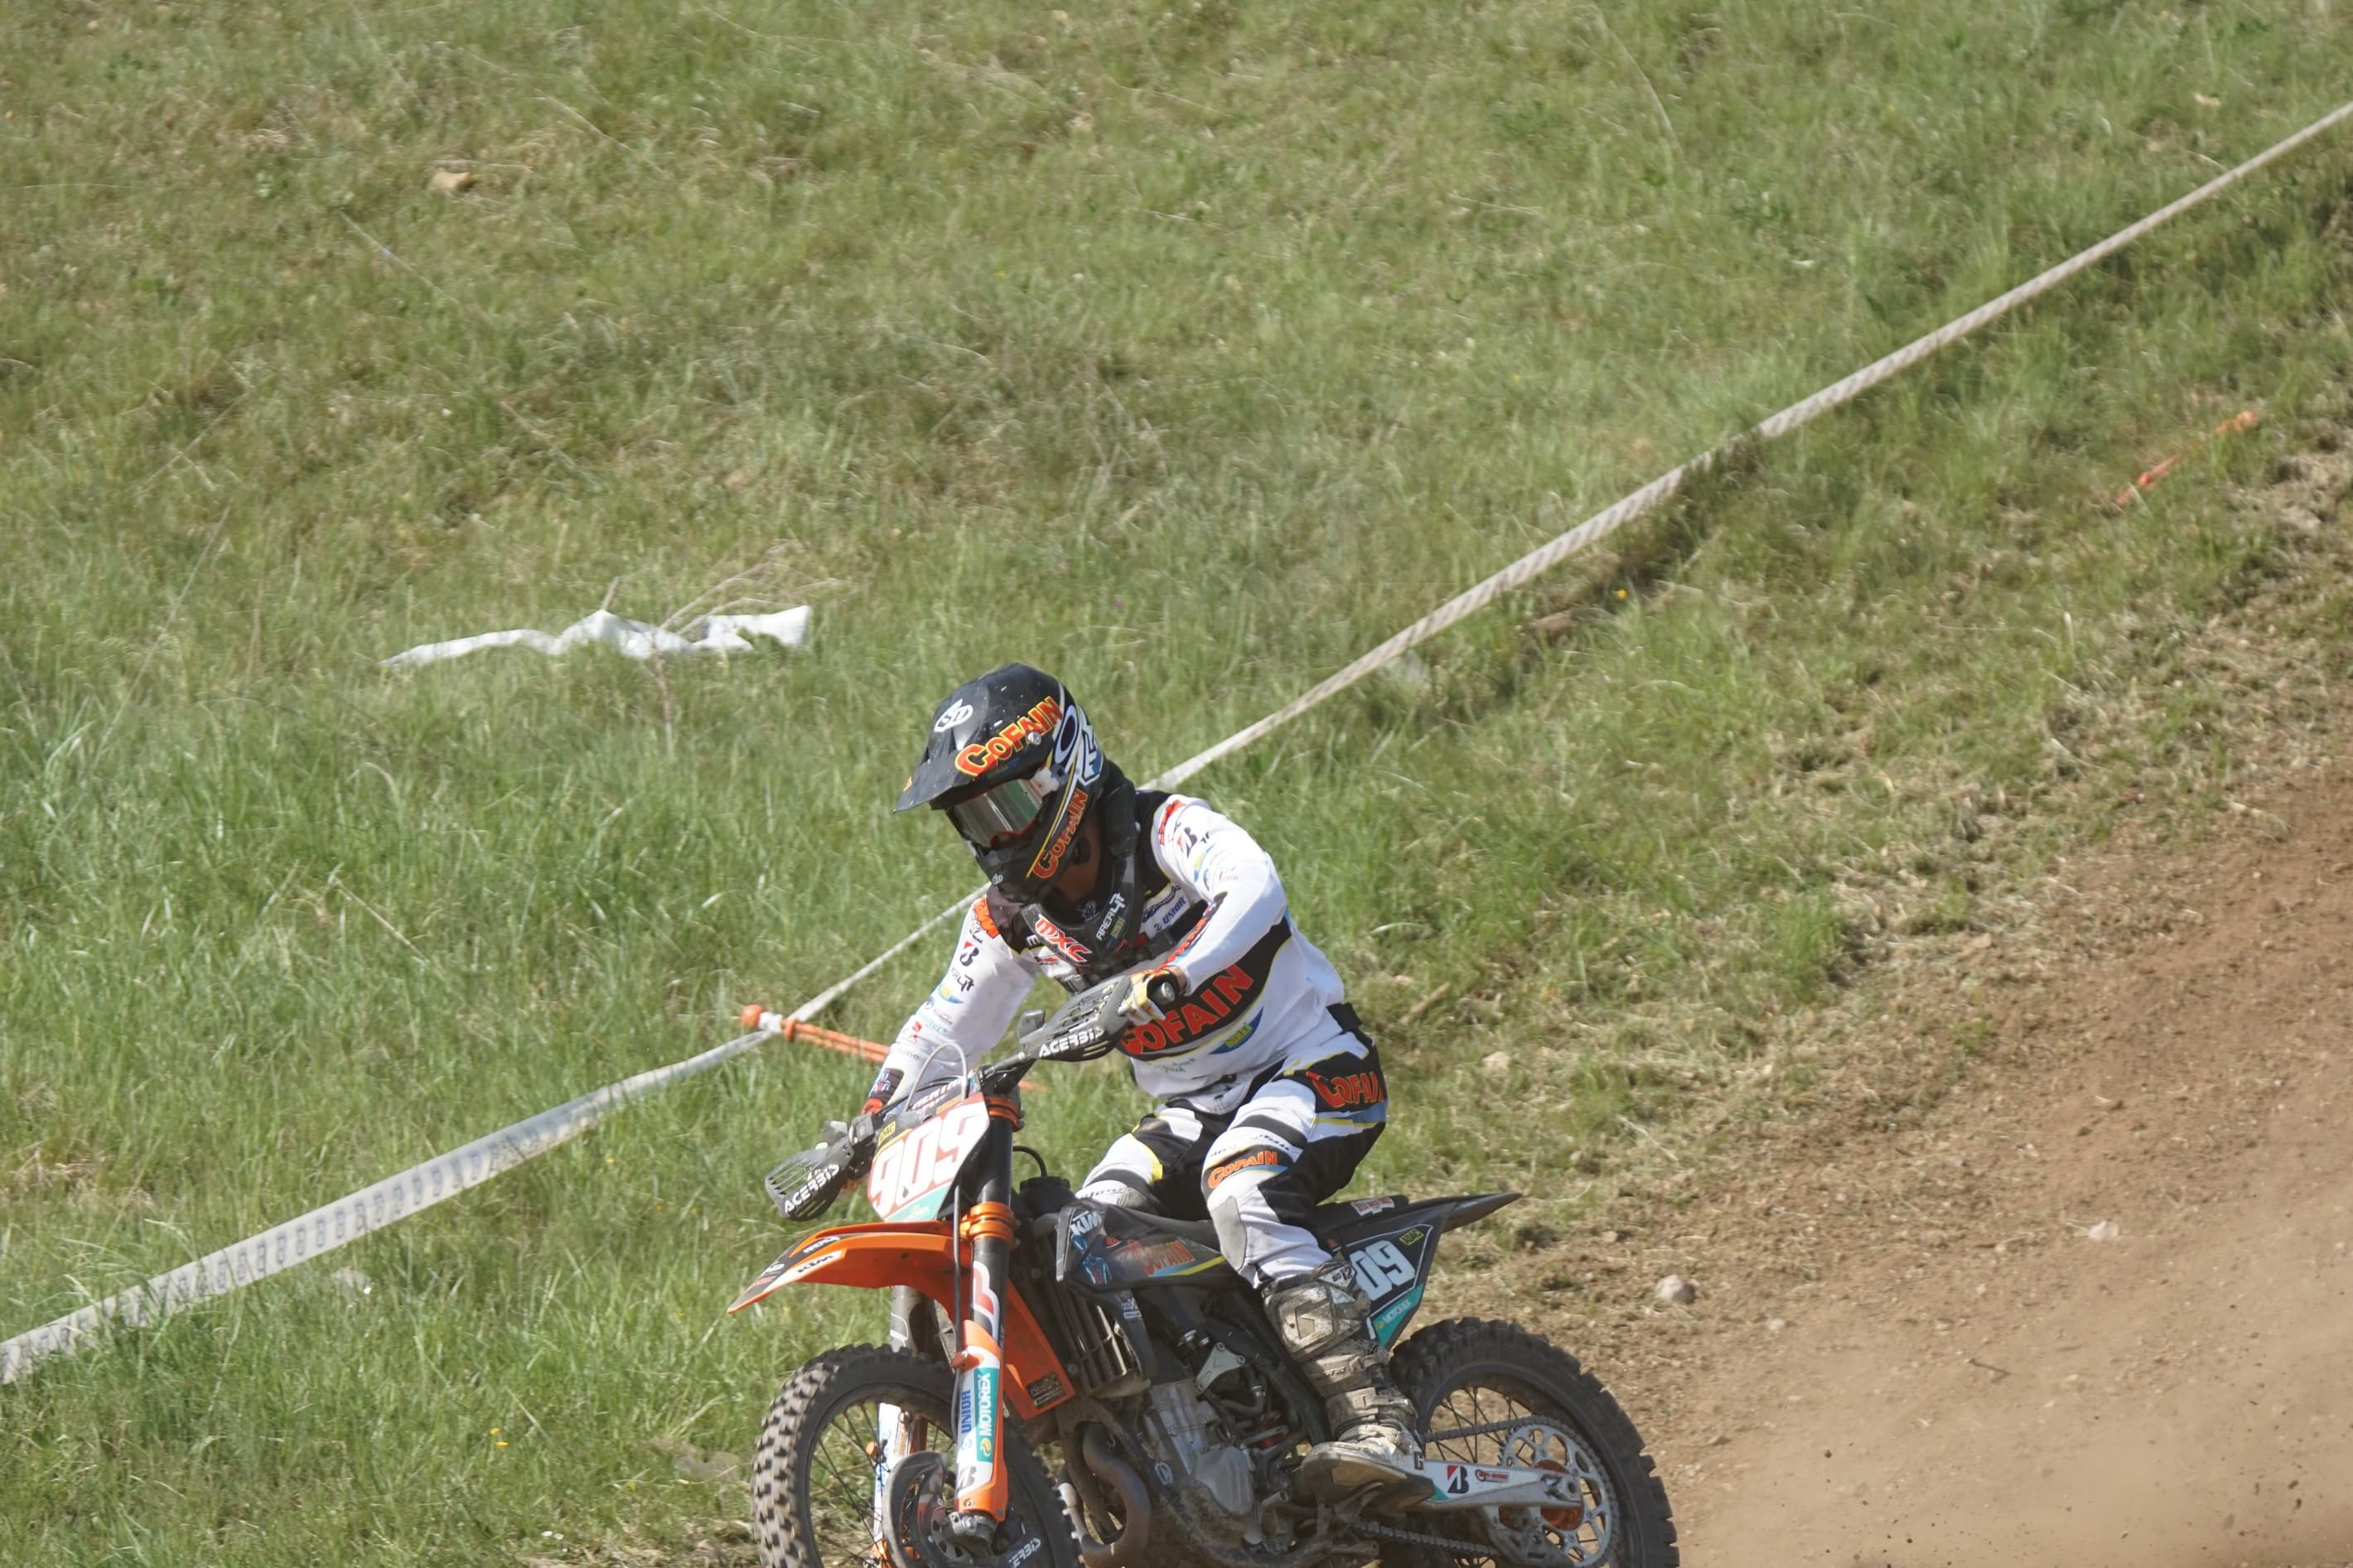 DSC 937_Moto Cross Sittendorf Teil1 am 29.04.2018